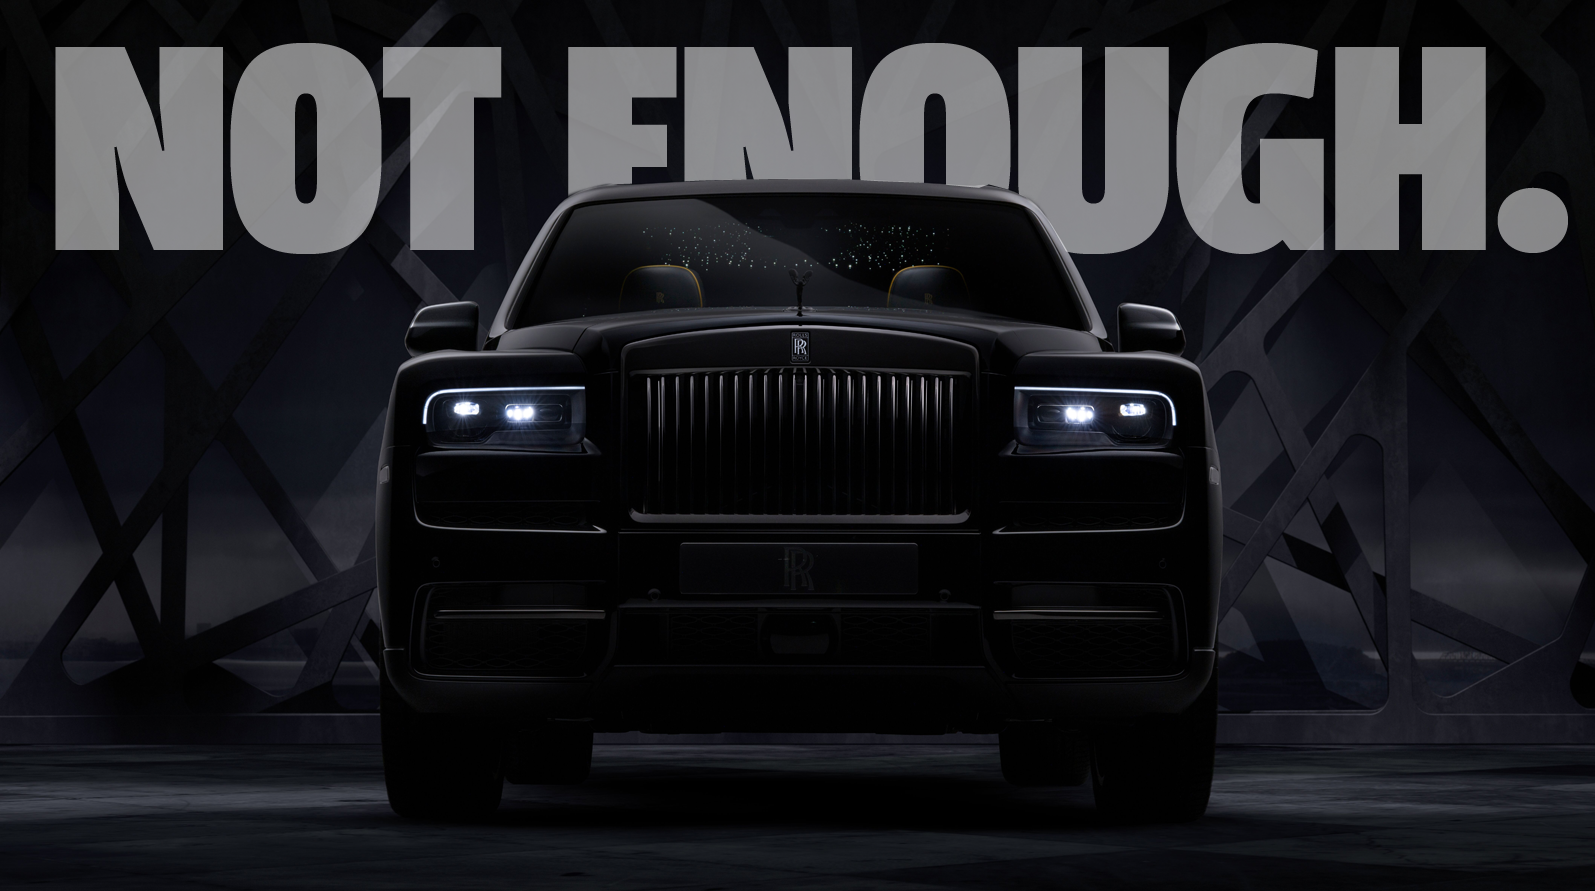 I Find The Rolls-Royce Cullinan Black Badge Completely Unable To Meet My Refined Taste